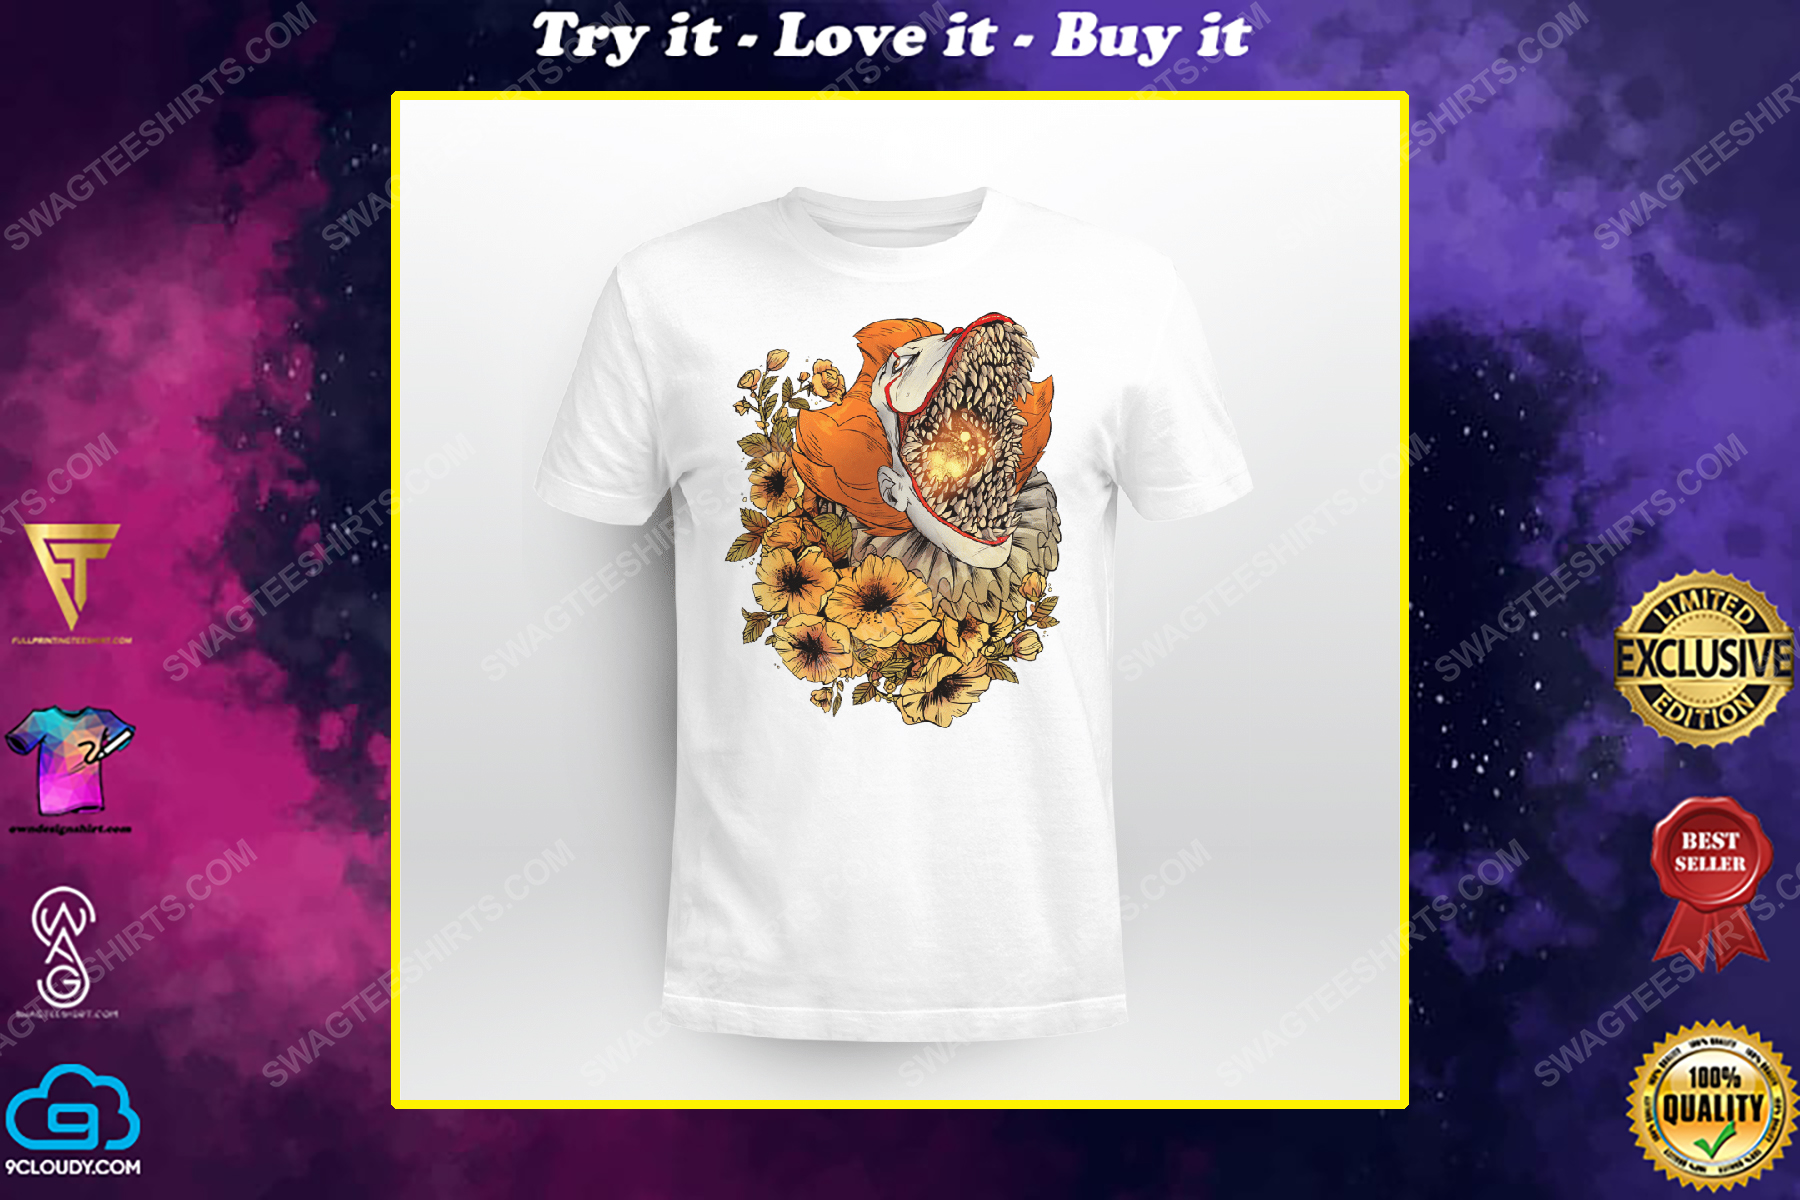 Flower it pennywise the dancing clown shirt